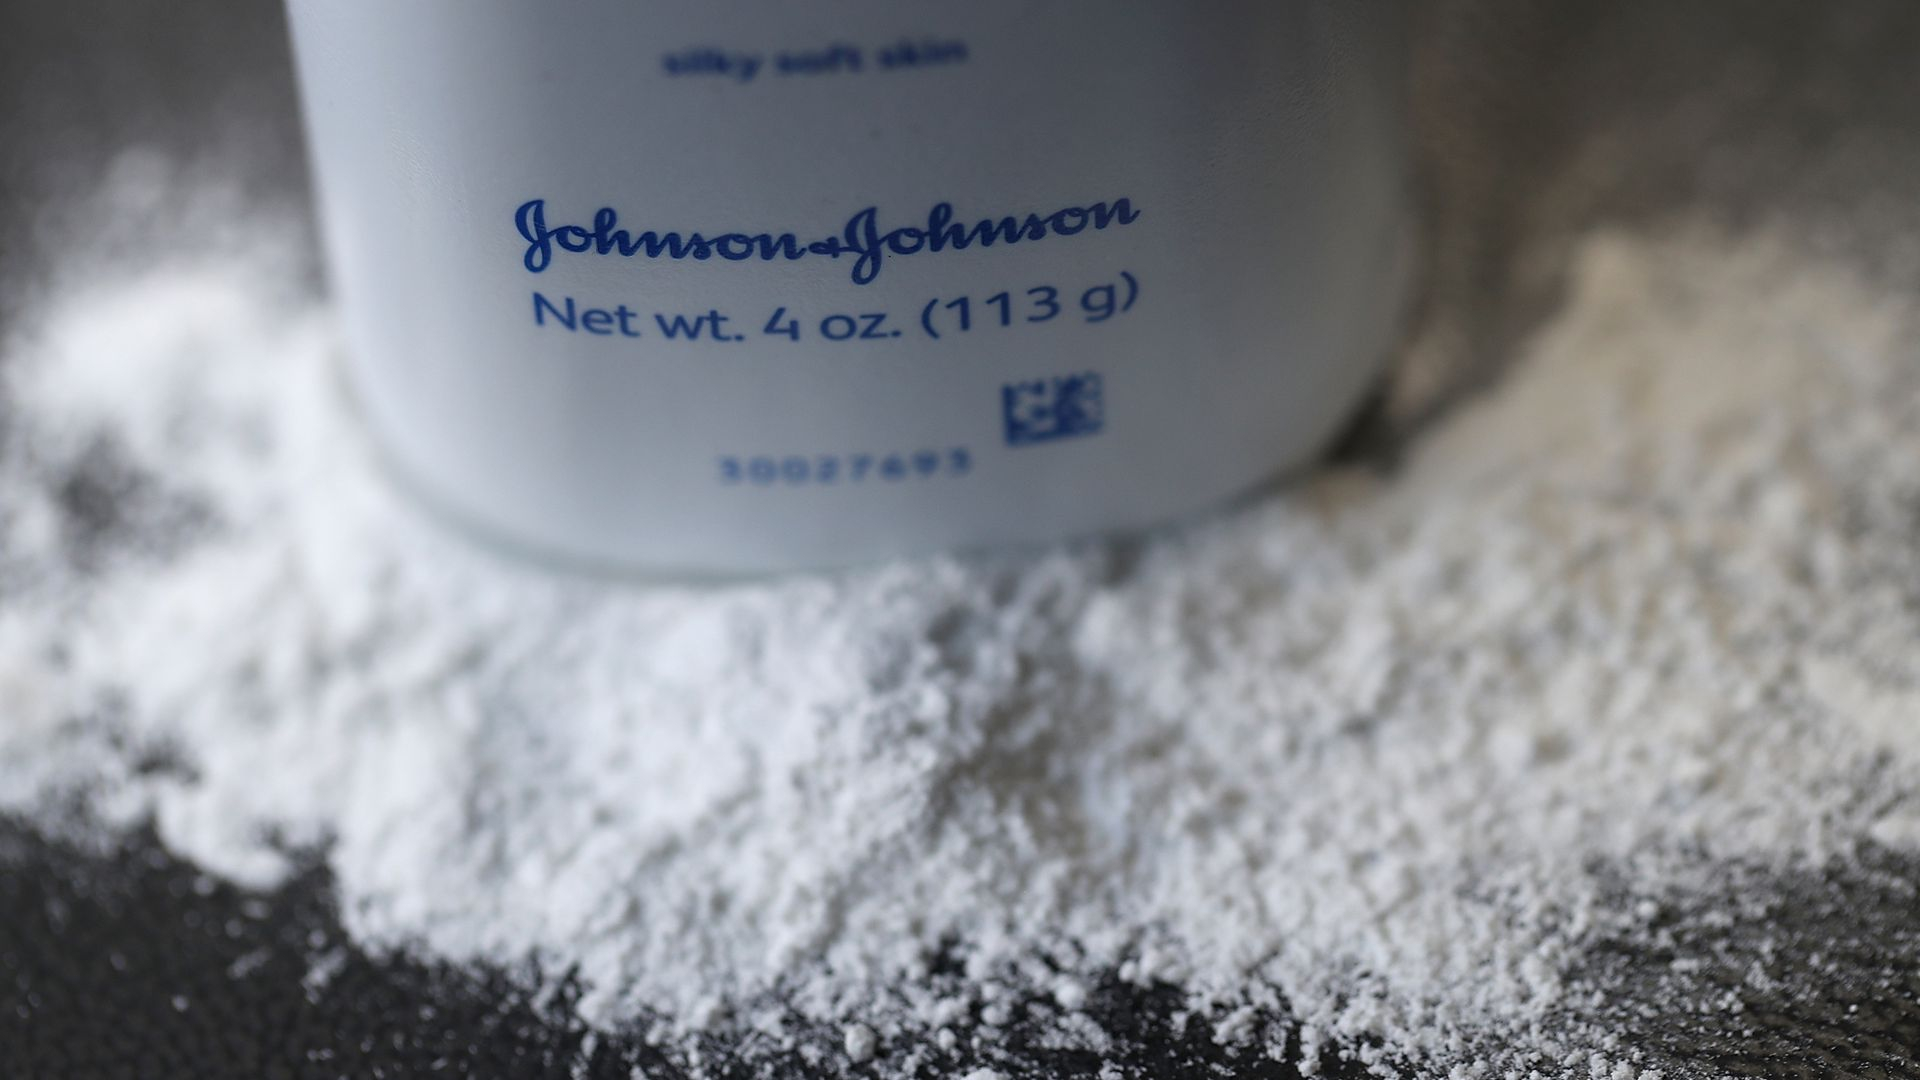 Johnson & Johnson baby powder and bottle.